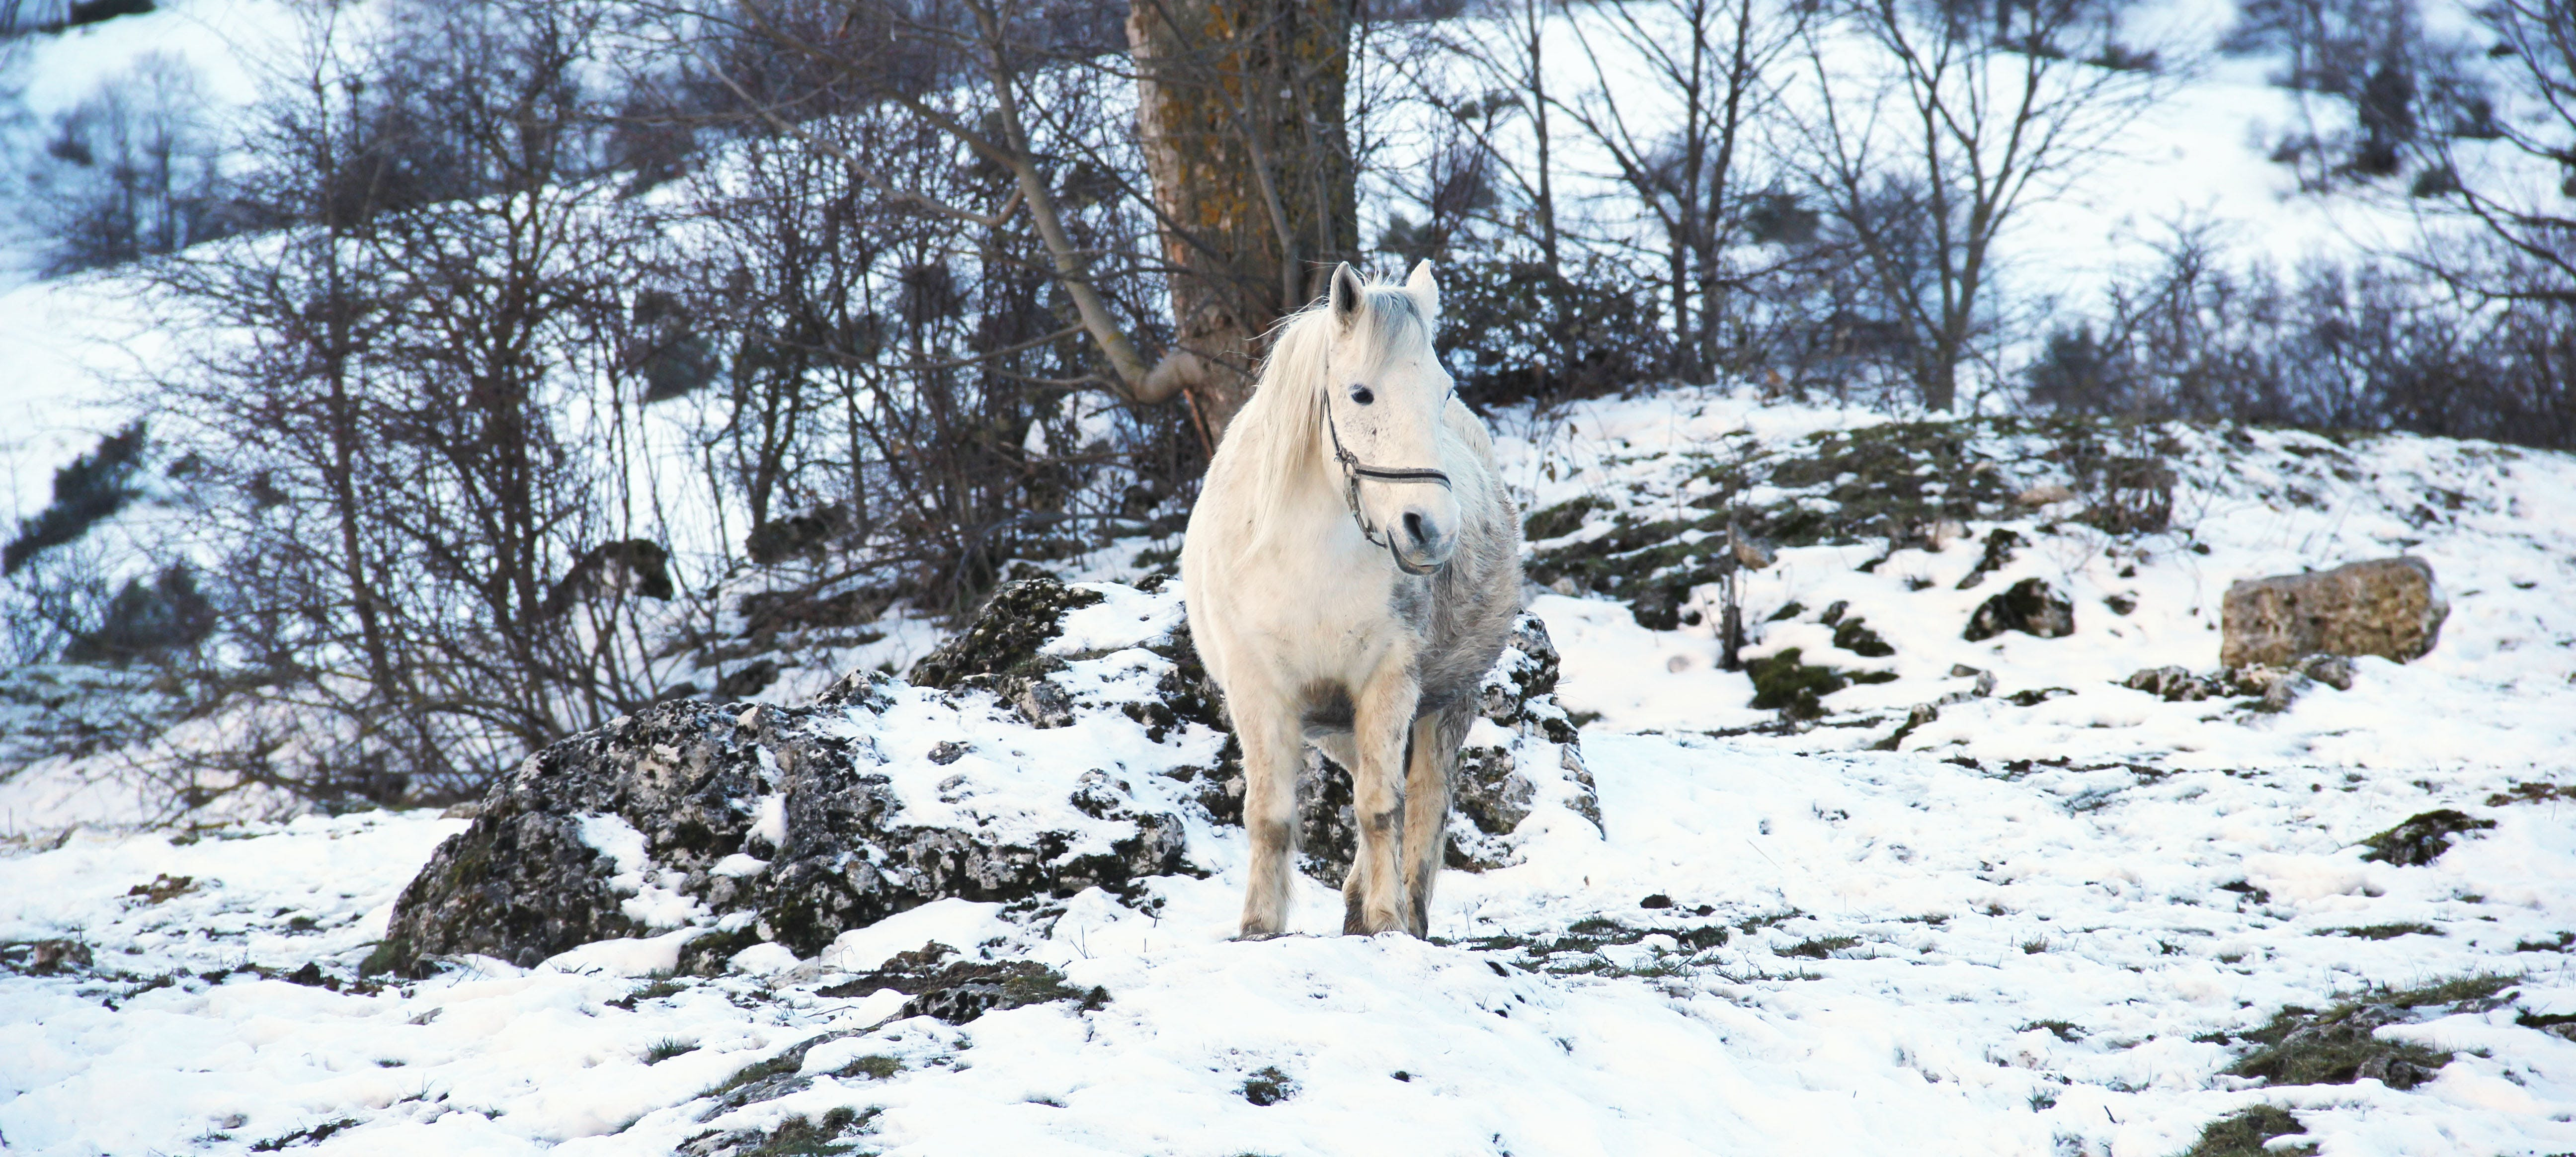 White Horse on White Snow